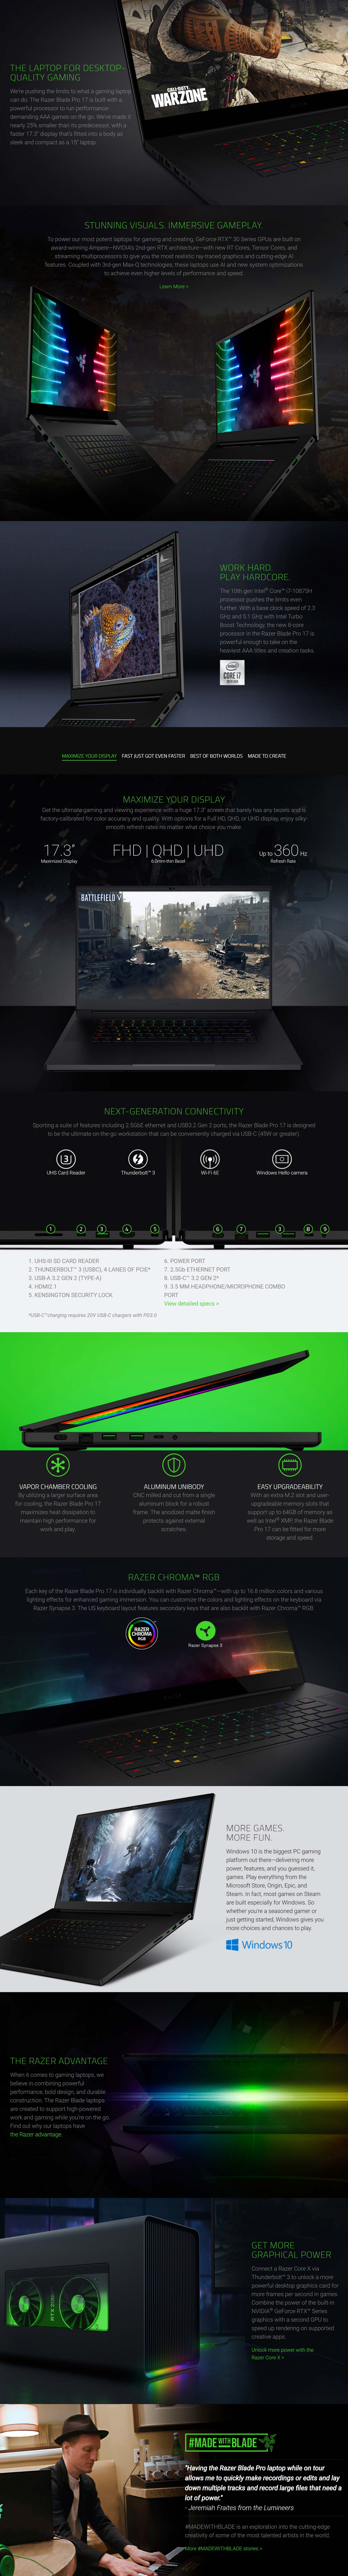 screencapture-www2-razer-au-en-gaming-systems-razer-blade-pro-2021-04-14-13_17_23.jpg